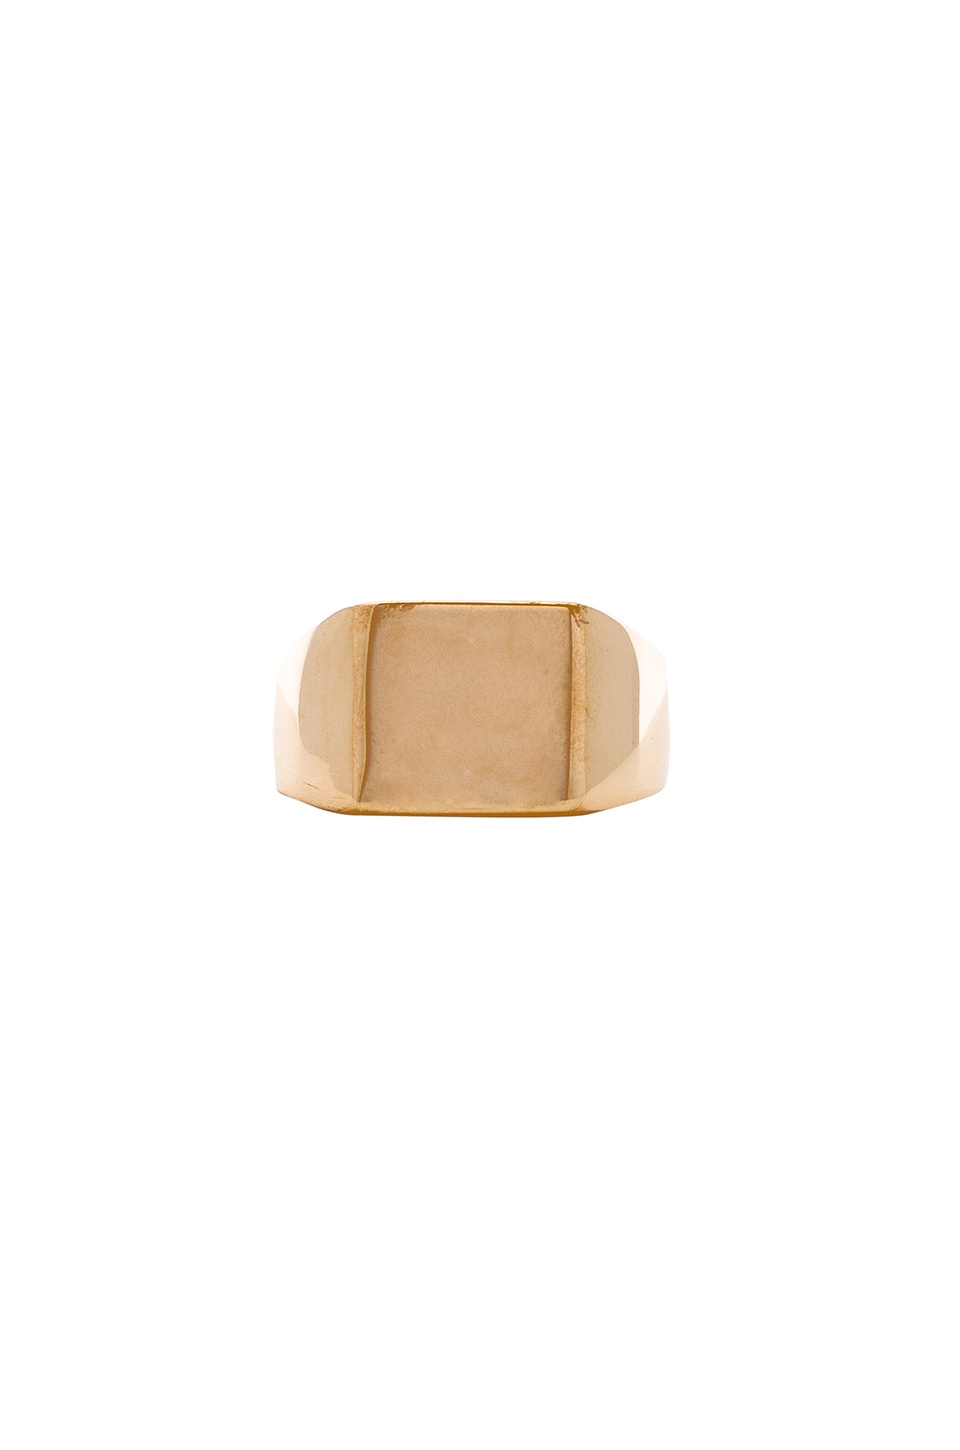 NATALIE B JEWELRY Midnight Signet Ring in Metallic Gold